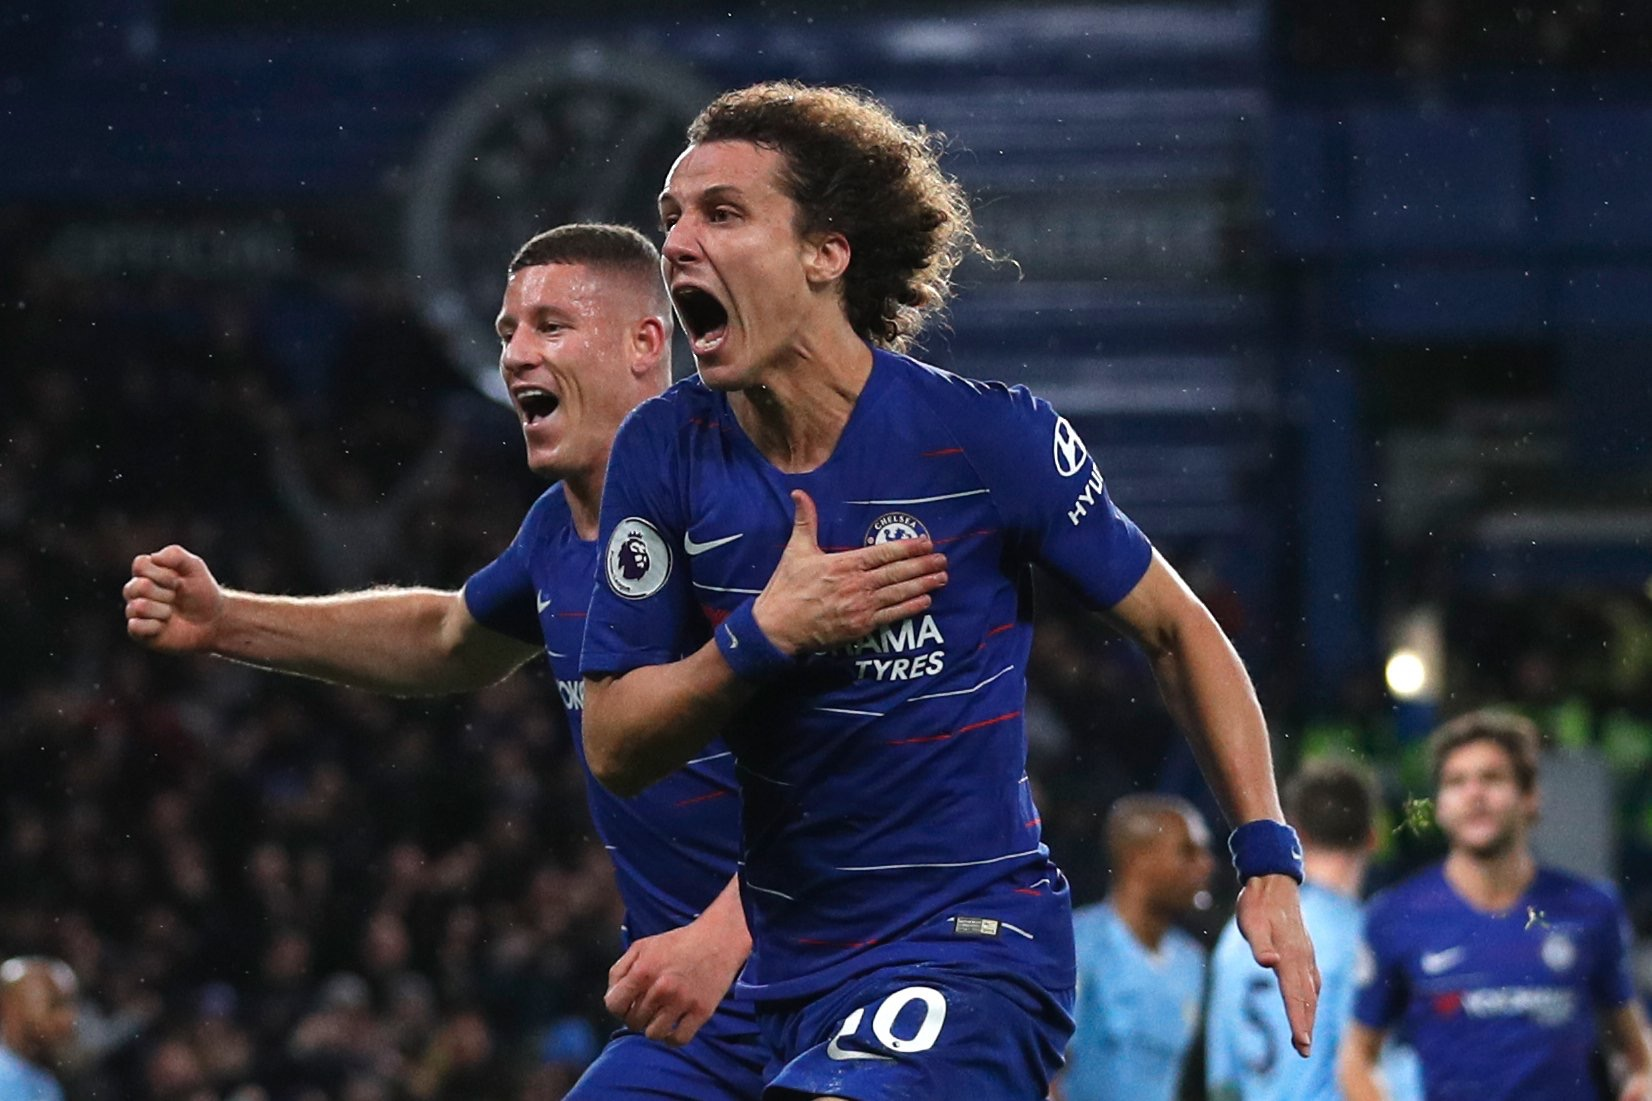 Chelsea hands Man City their first loss of the Premier League season